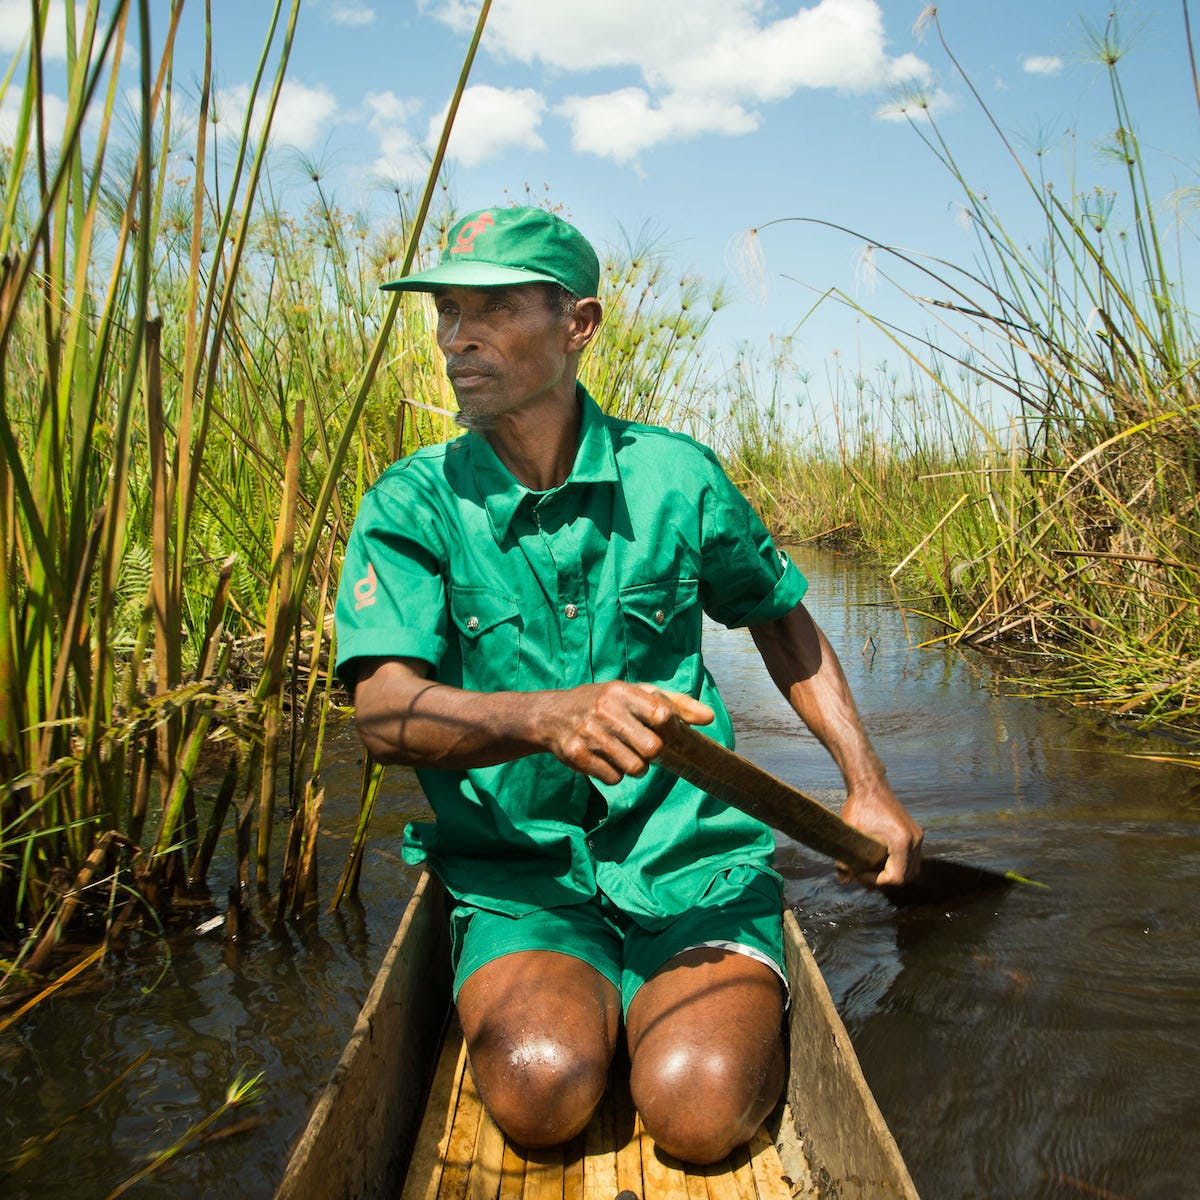 A man kneels in a wooden canoe in a green uniform as he travels through green reed beds